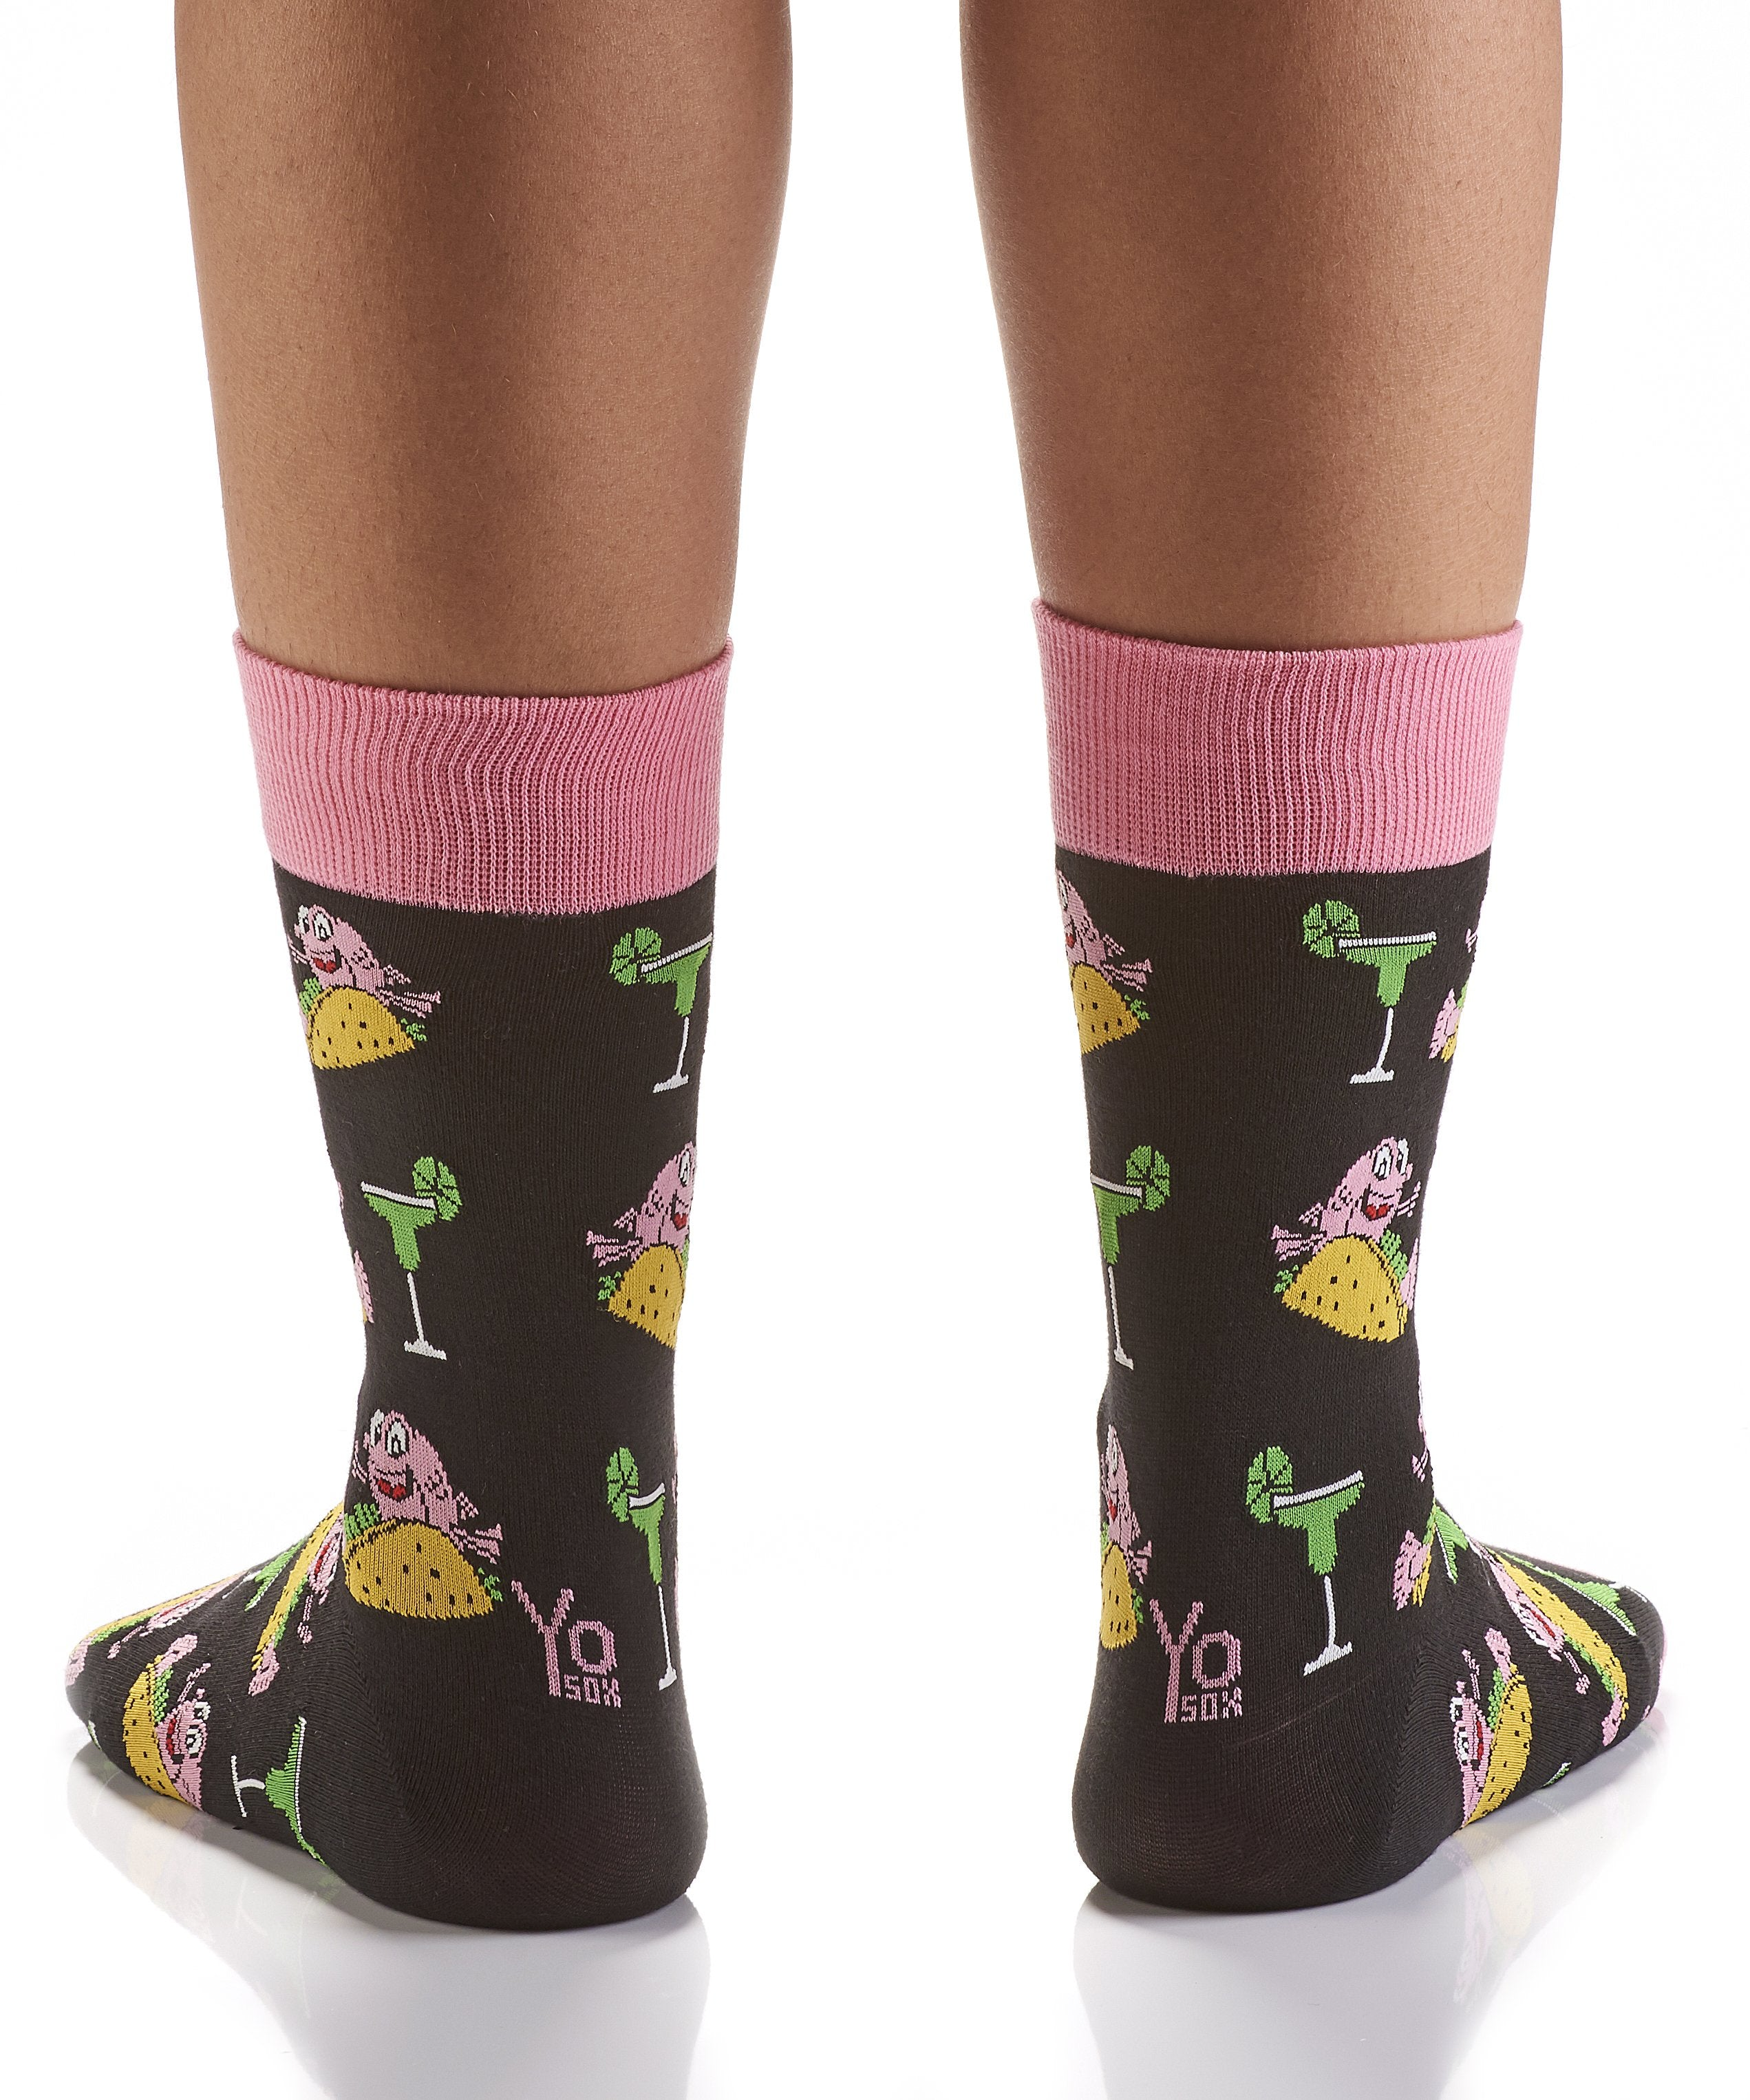 Let's Fiesta: Women's Crew Socks